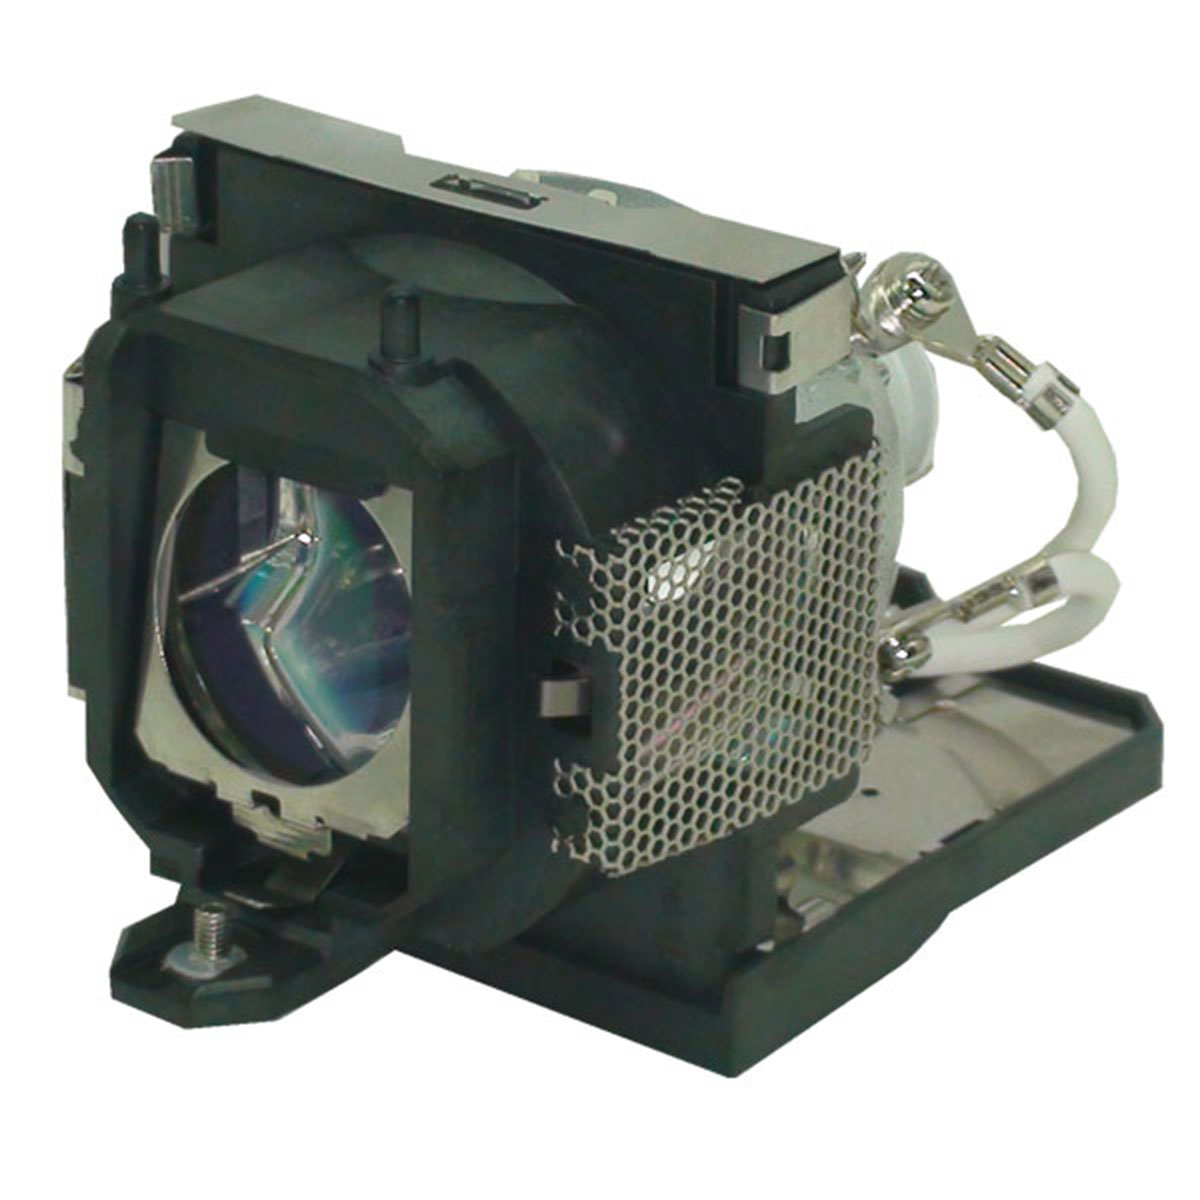 Original Osram Projector Lamp Replacement with Housing for BenQ CS.59J0Y.1B1 - image 5 of 5